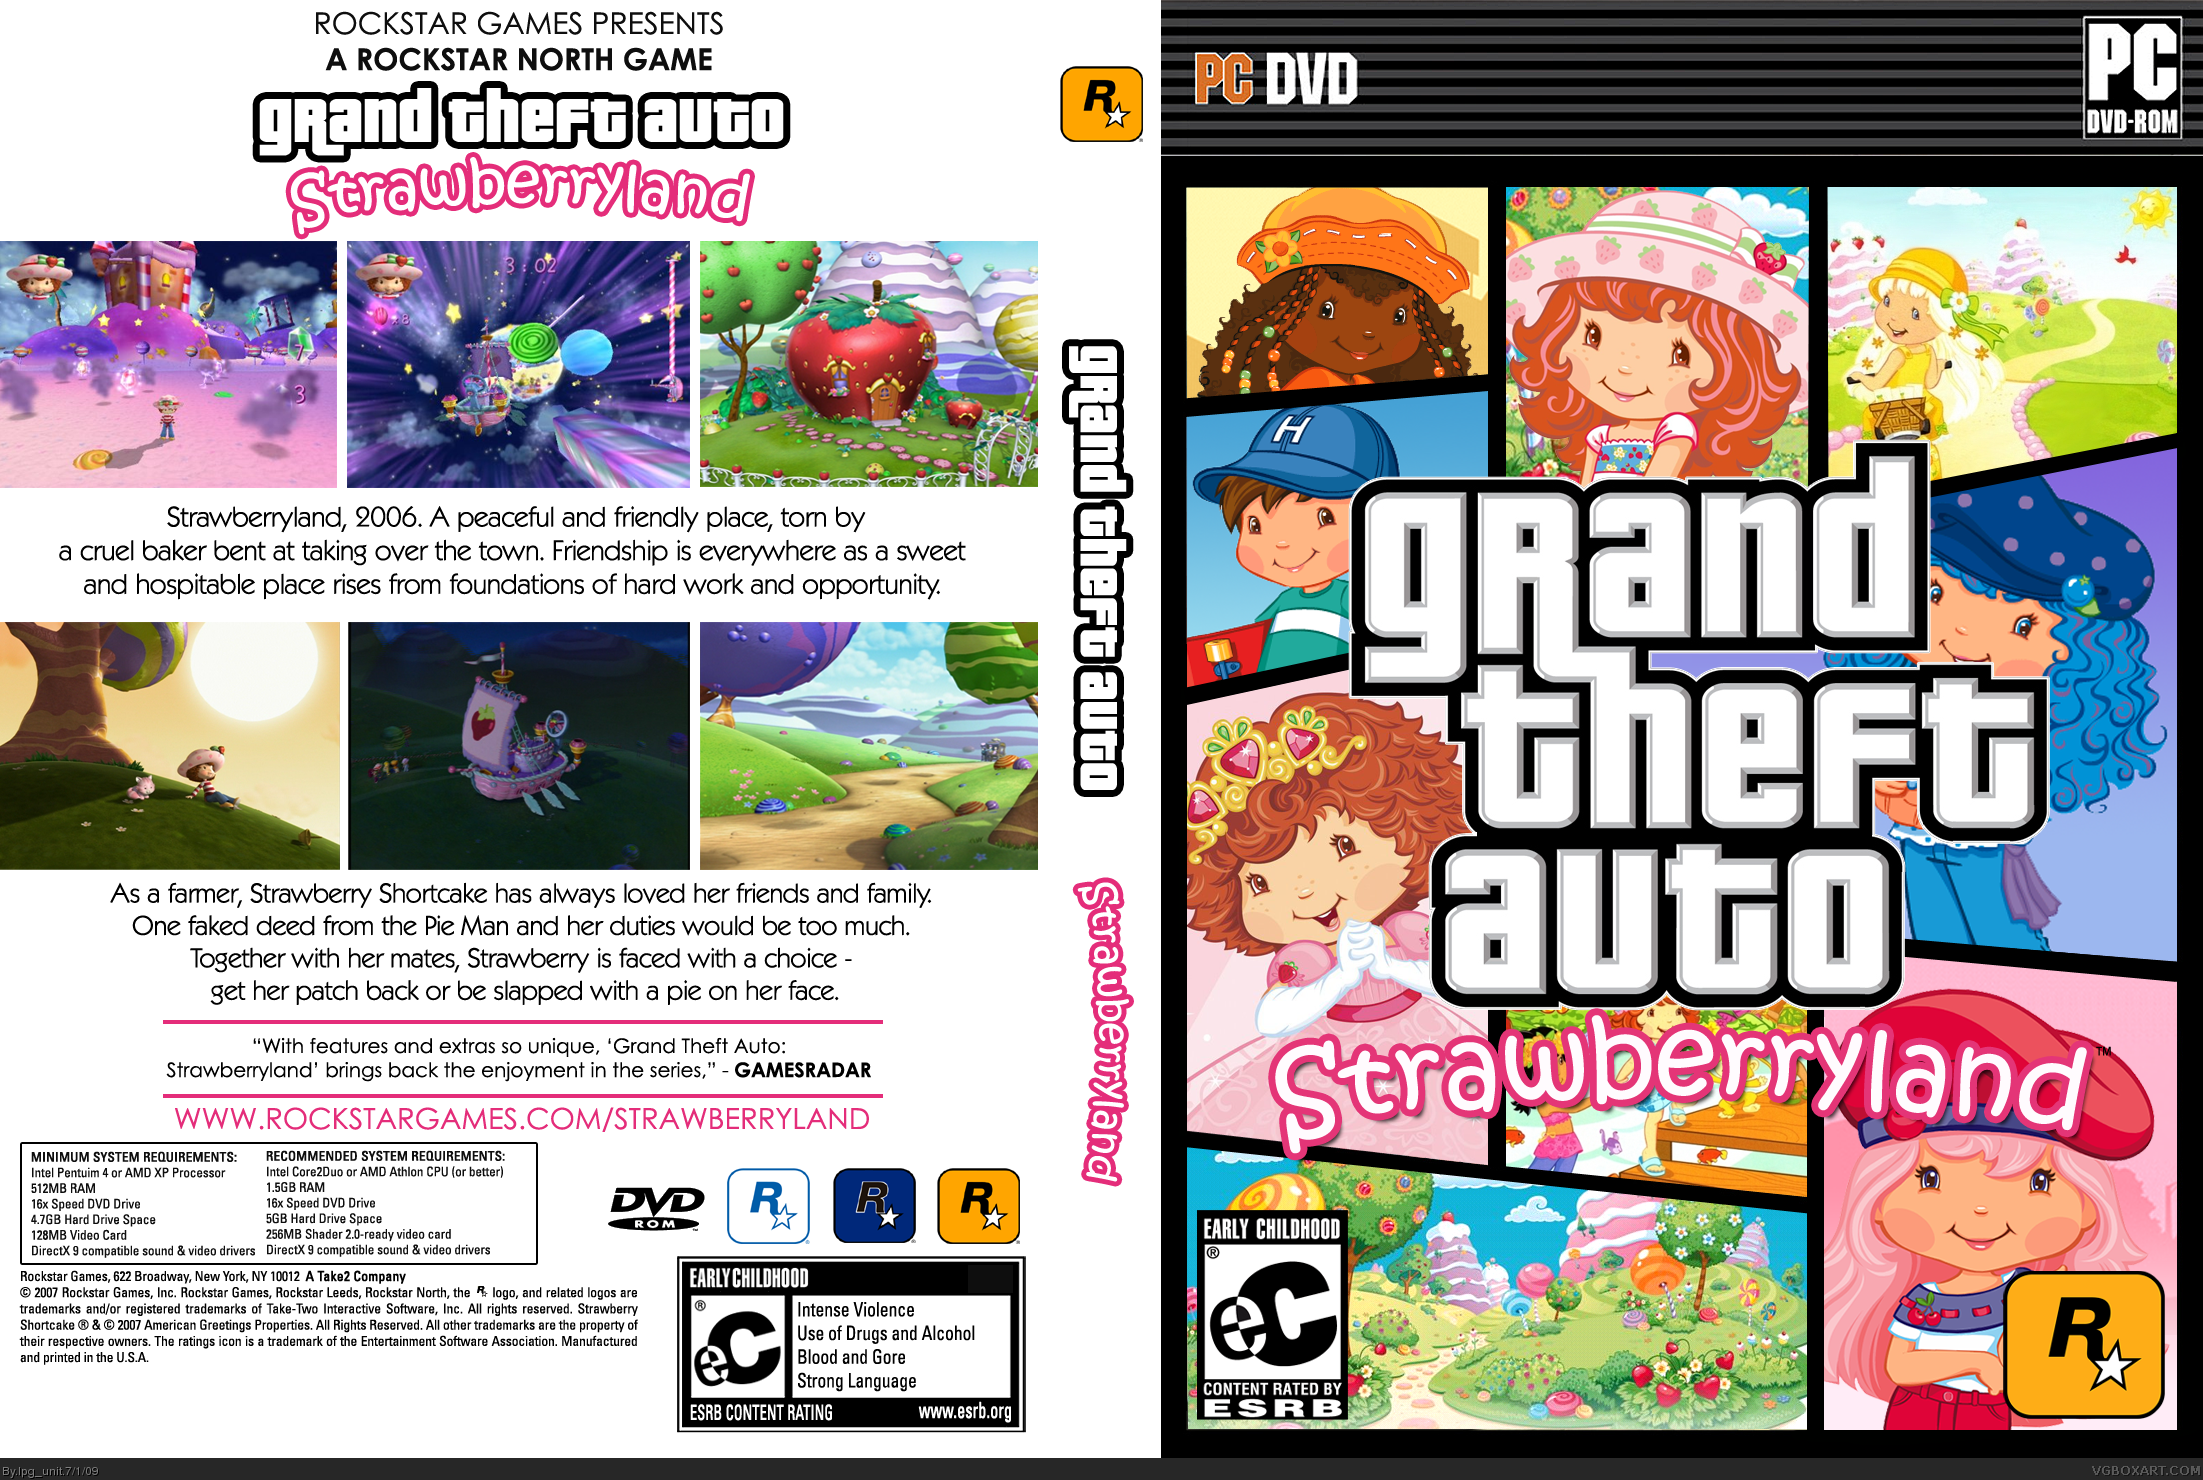 Viewing full size Grand Theft Auto box cover